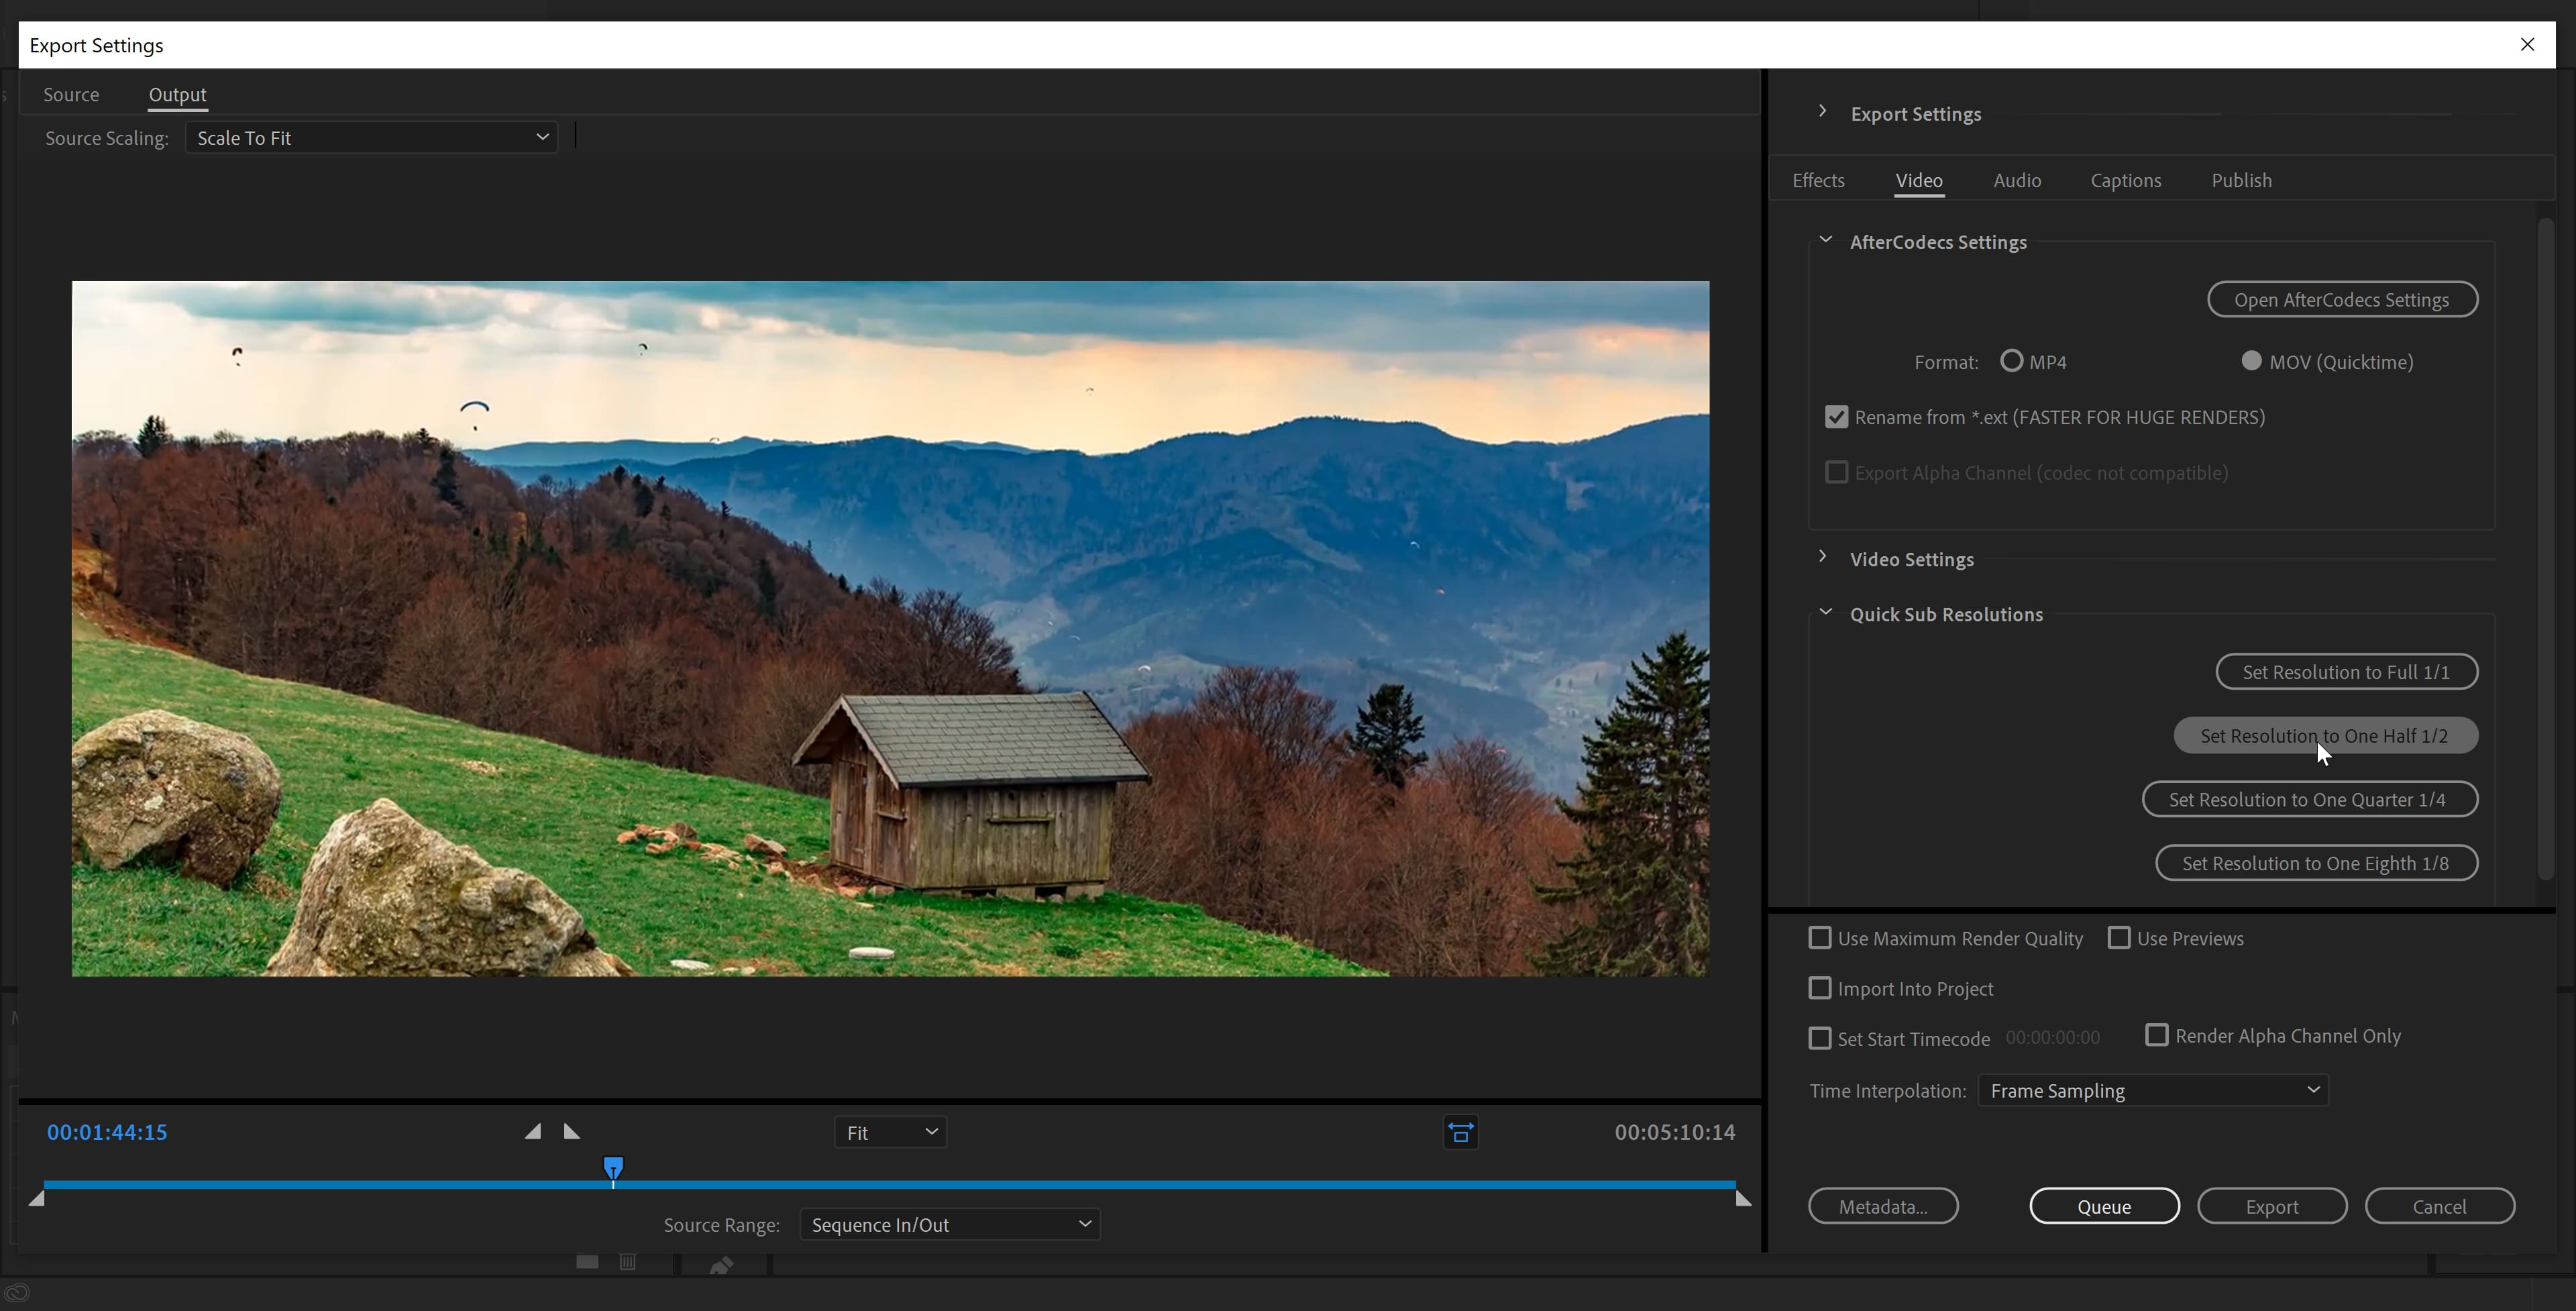 AfterCodecs for Adobe Premiere Pro and Adobe Media Encoder on Microsoft Windows (Fast exporter plugin screenshot)